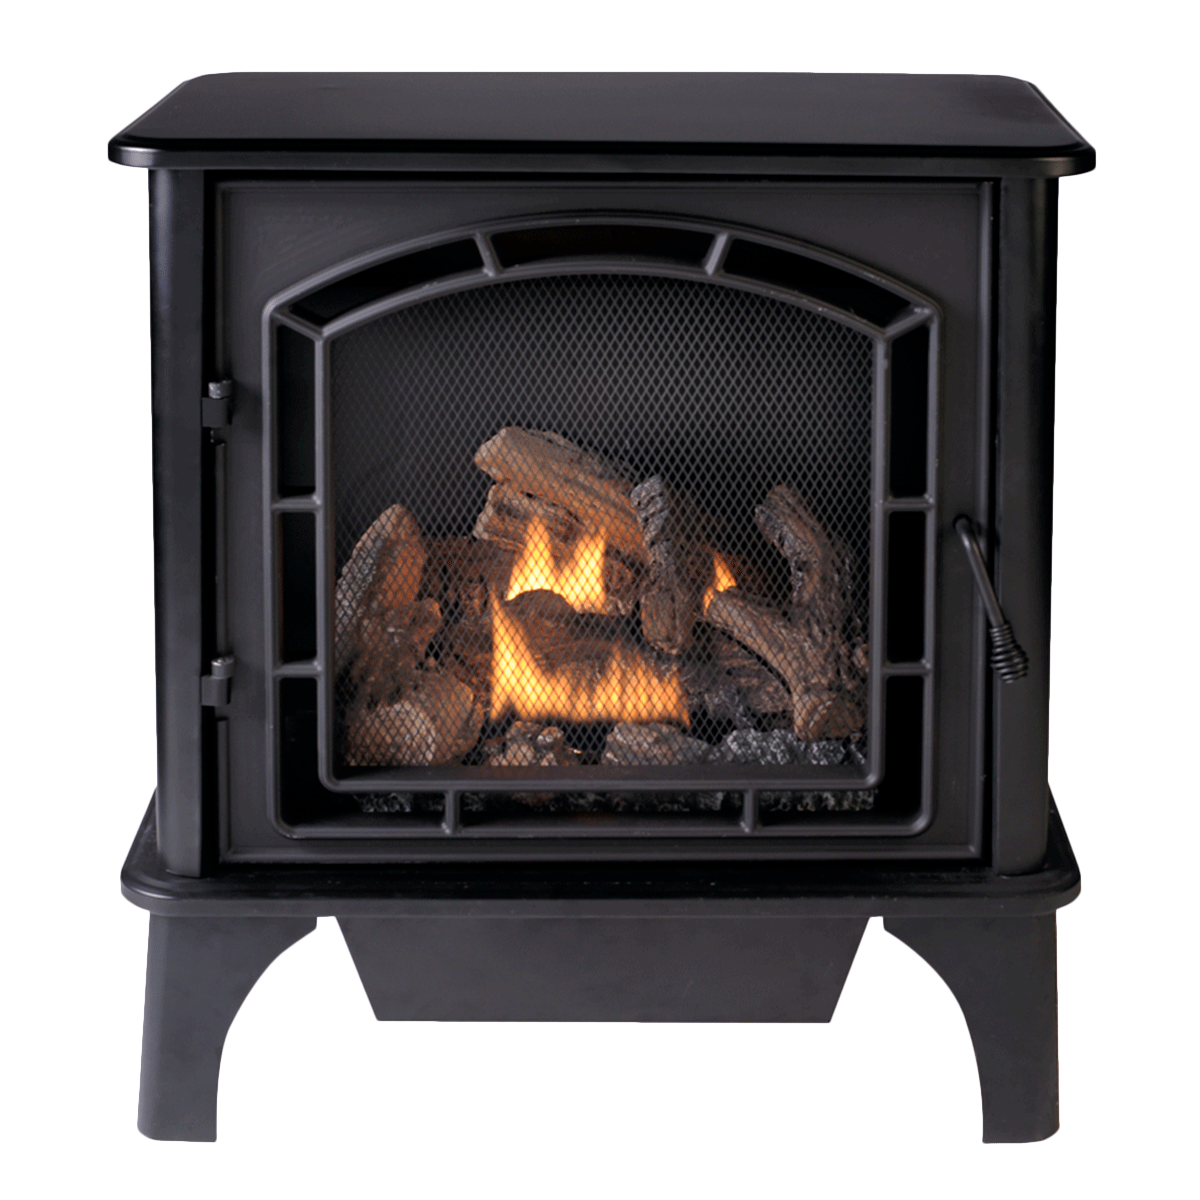 Fireplace Terminology  Glossary Of Fireplace Terms  Fireplace ABC